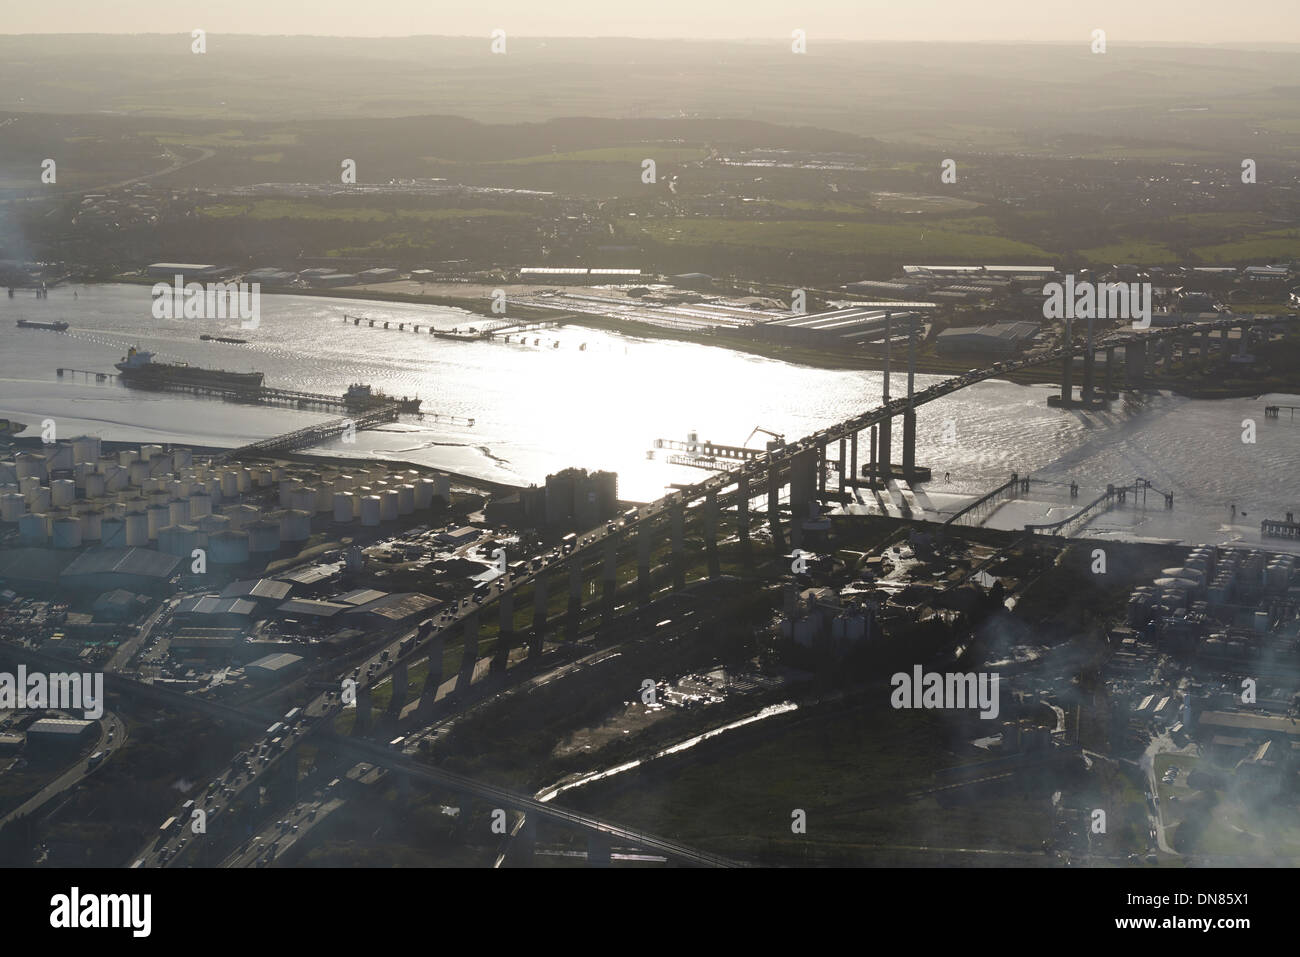 Dartford Crossing and the river Thames, London, South East England, UK - Stock Image